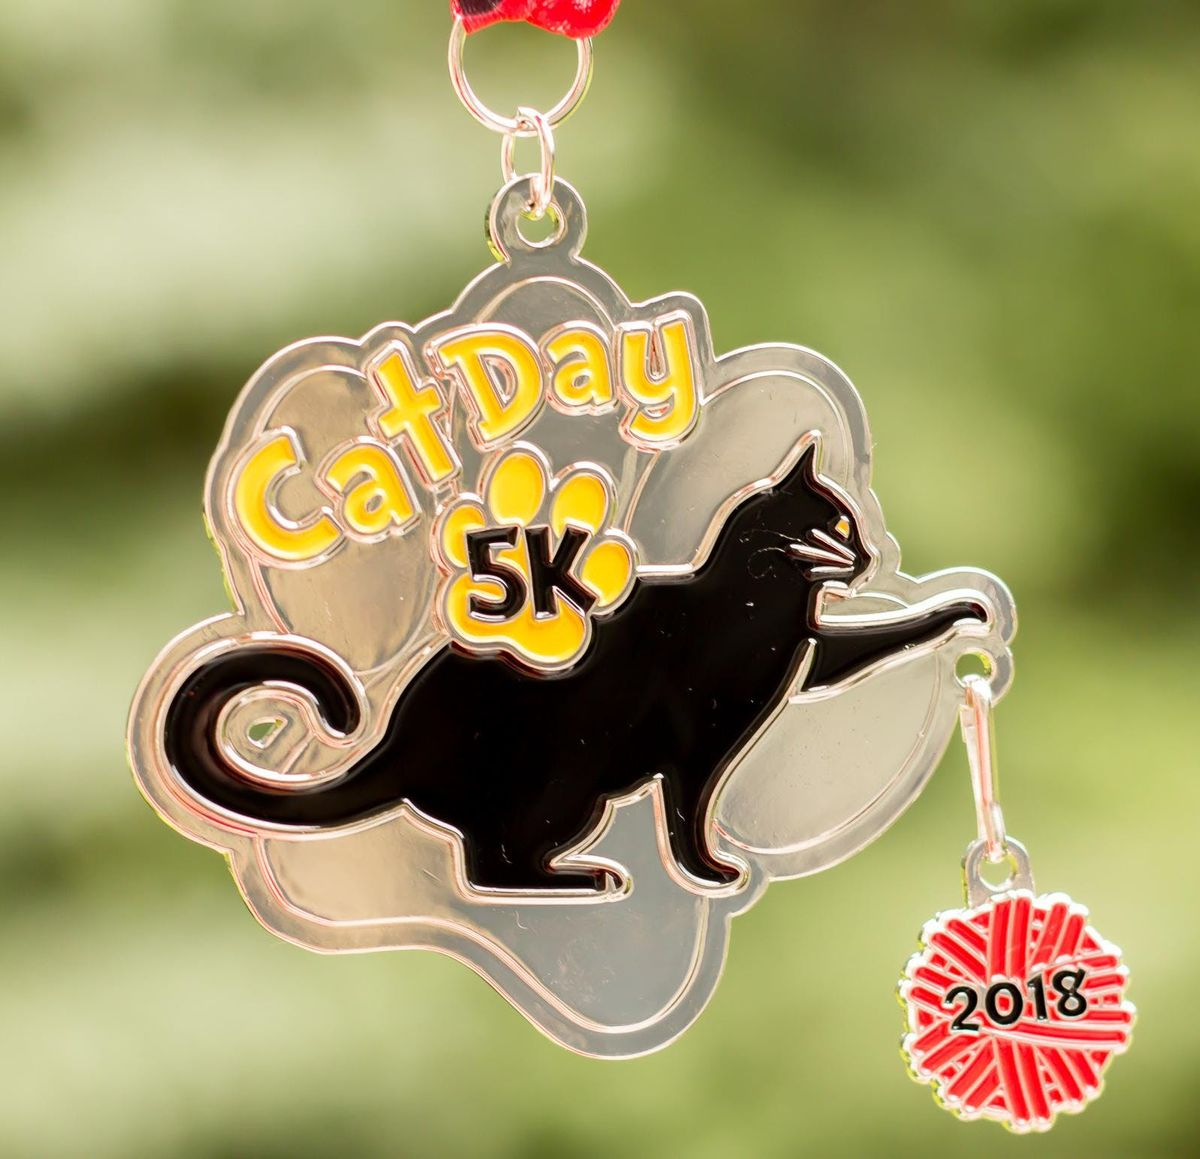 Now Only 10 Cat Day 5K & 10K -Columbia